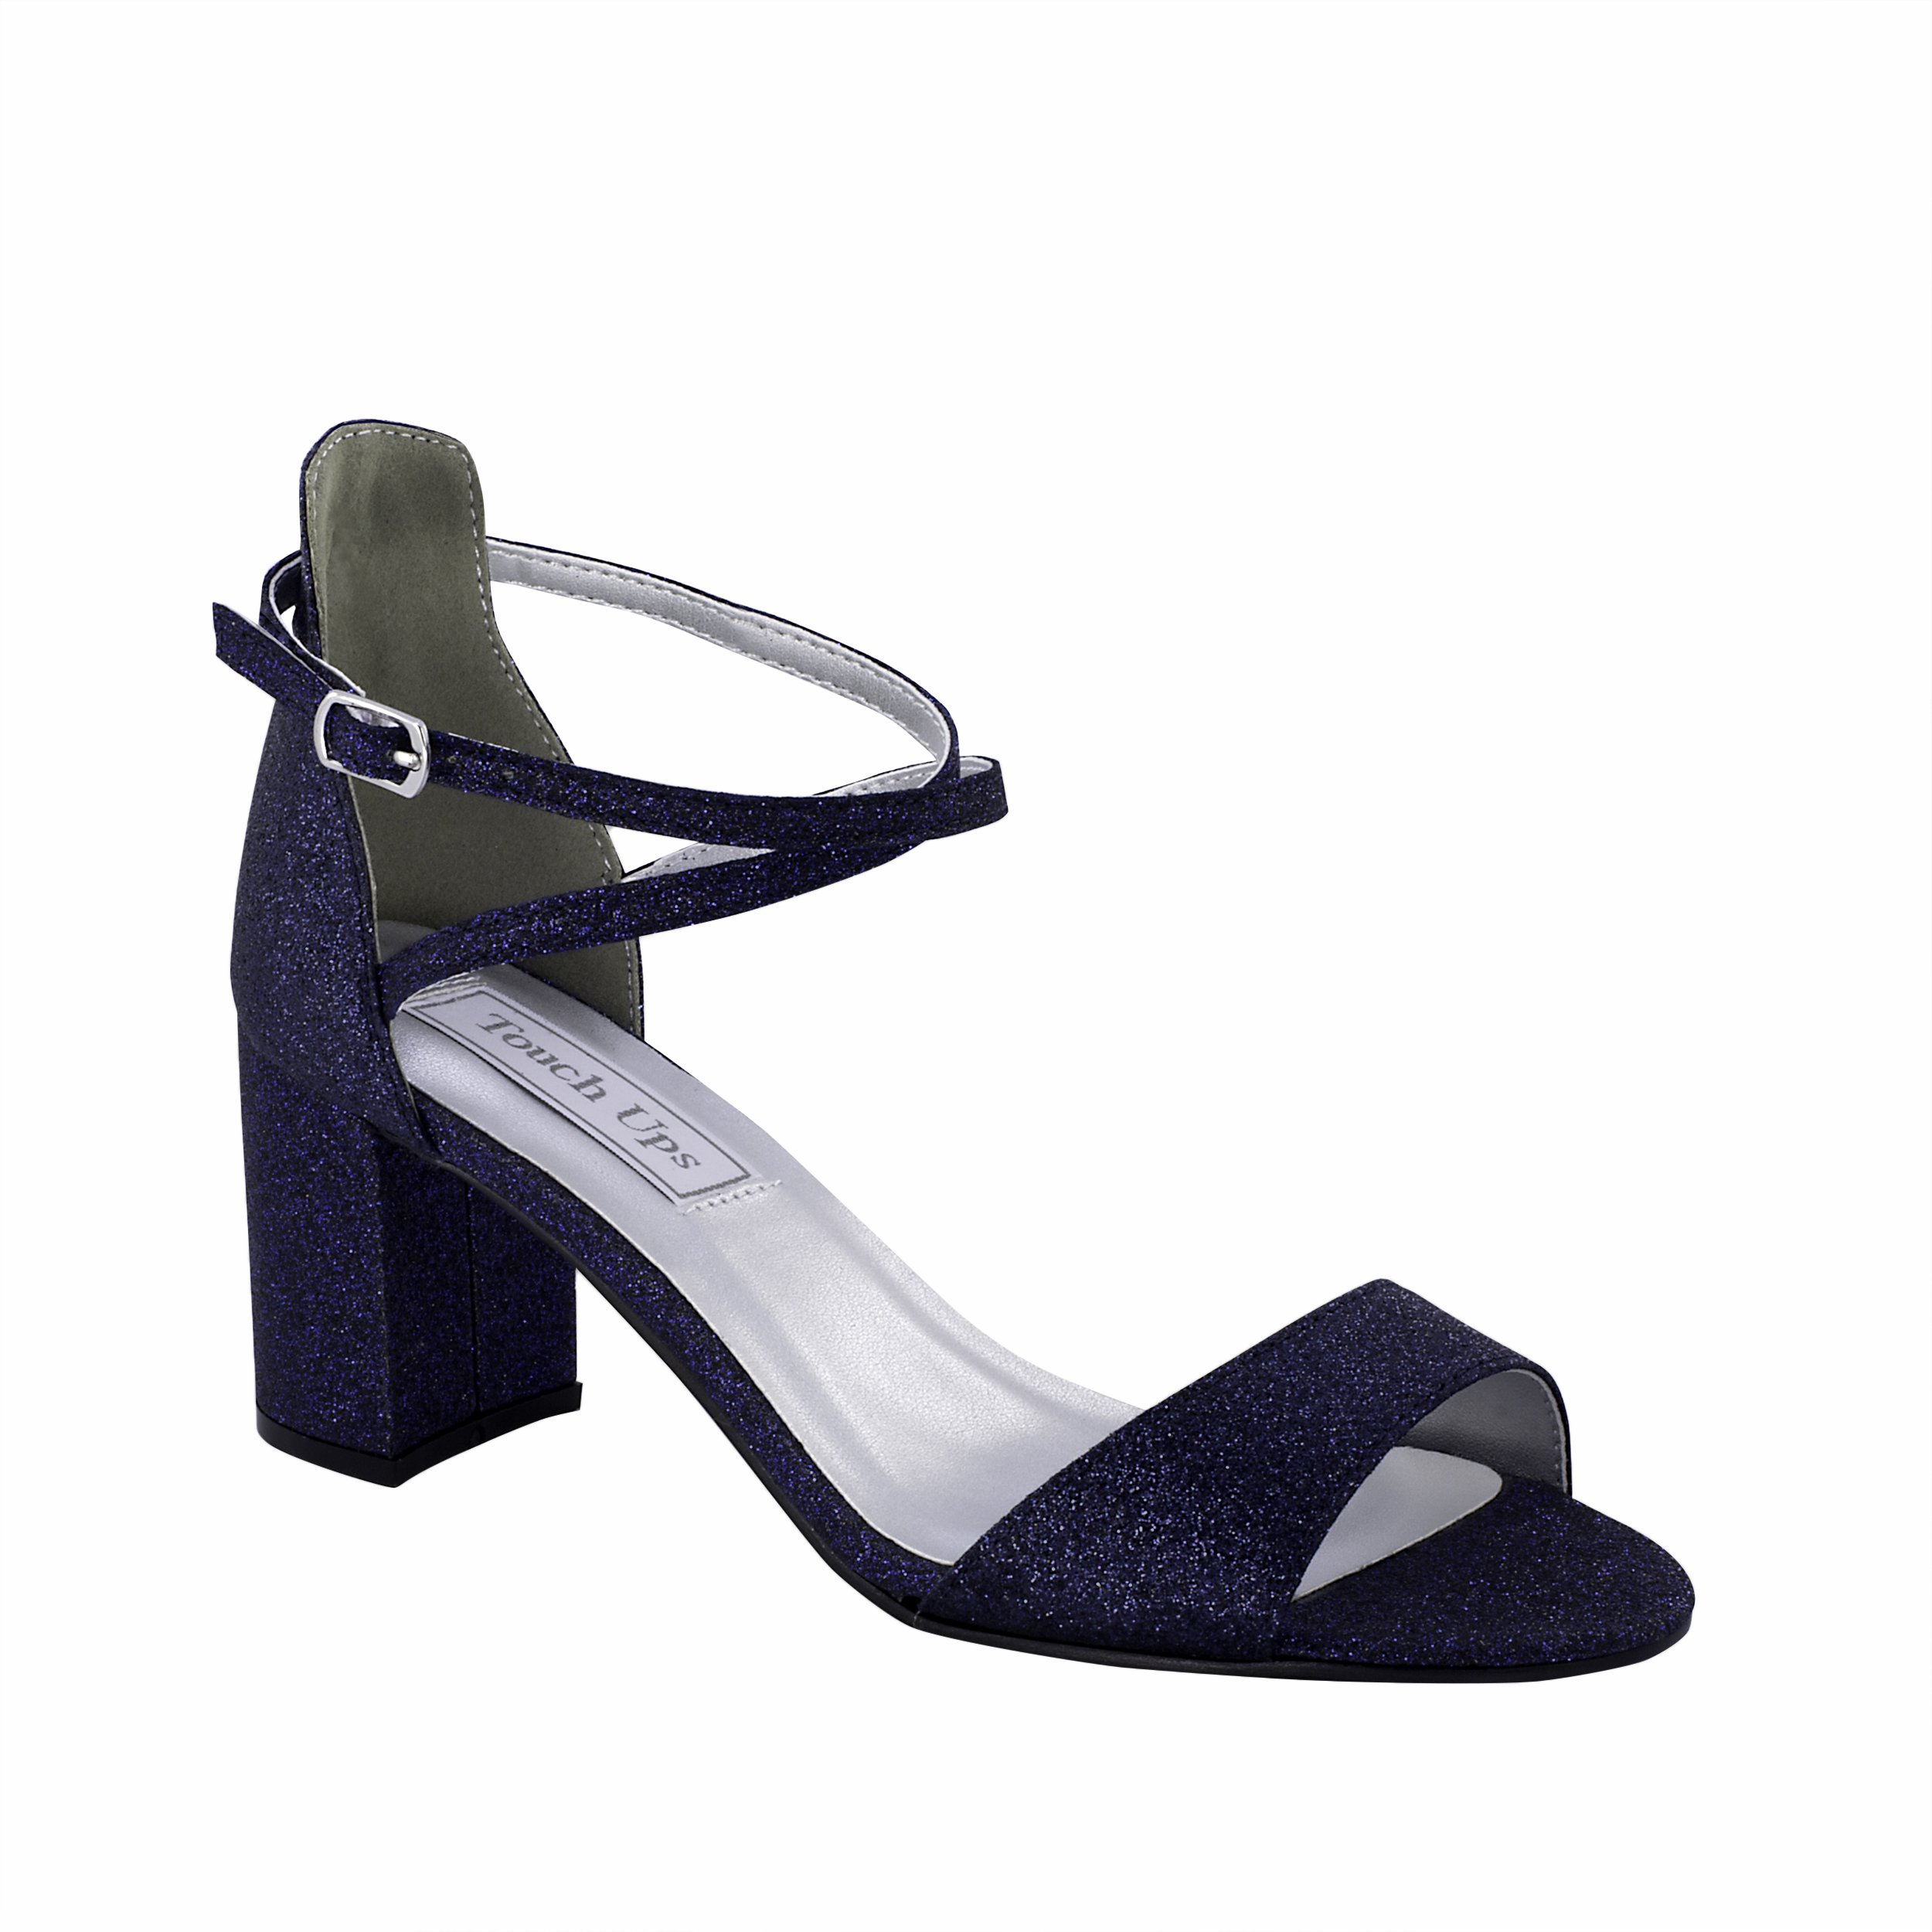 Touch Ups Women's Jackie Heeled Sandal, Navy, 5.5 M US